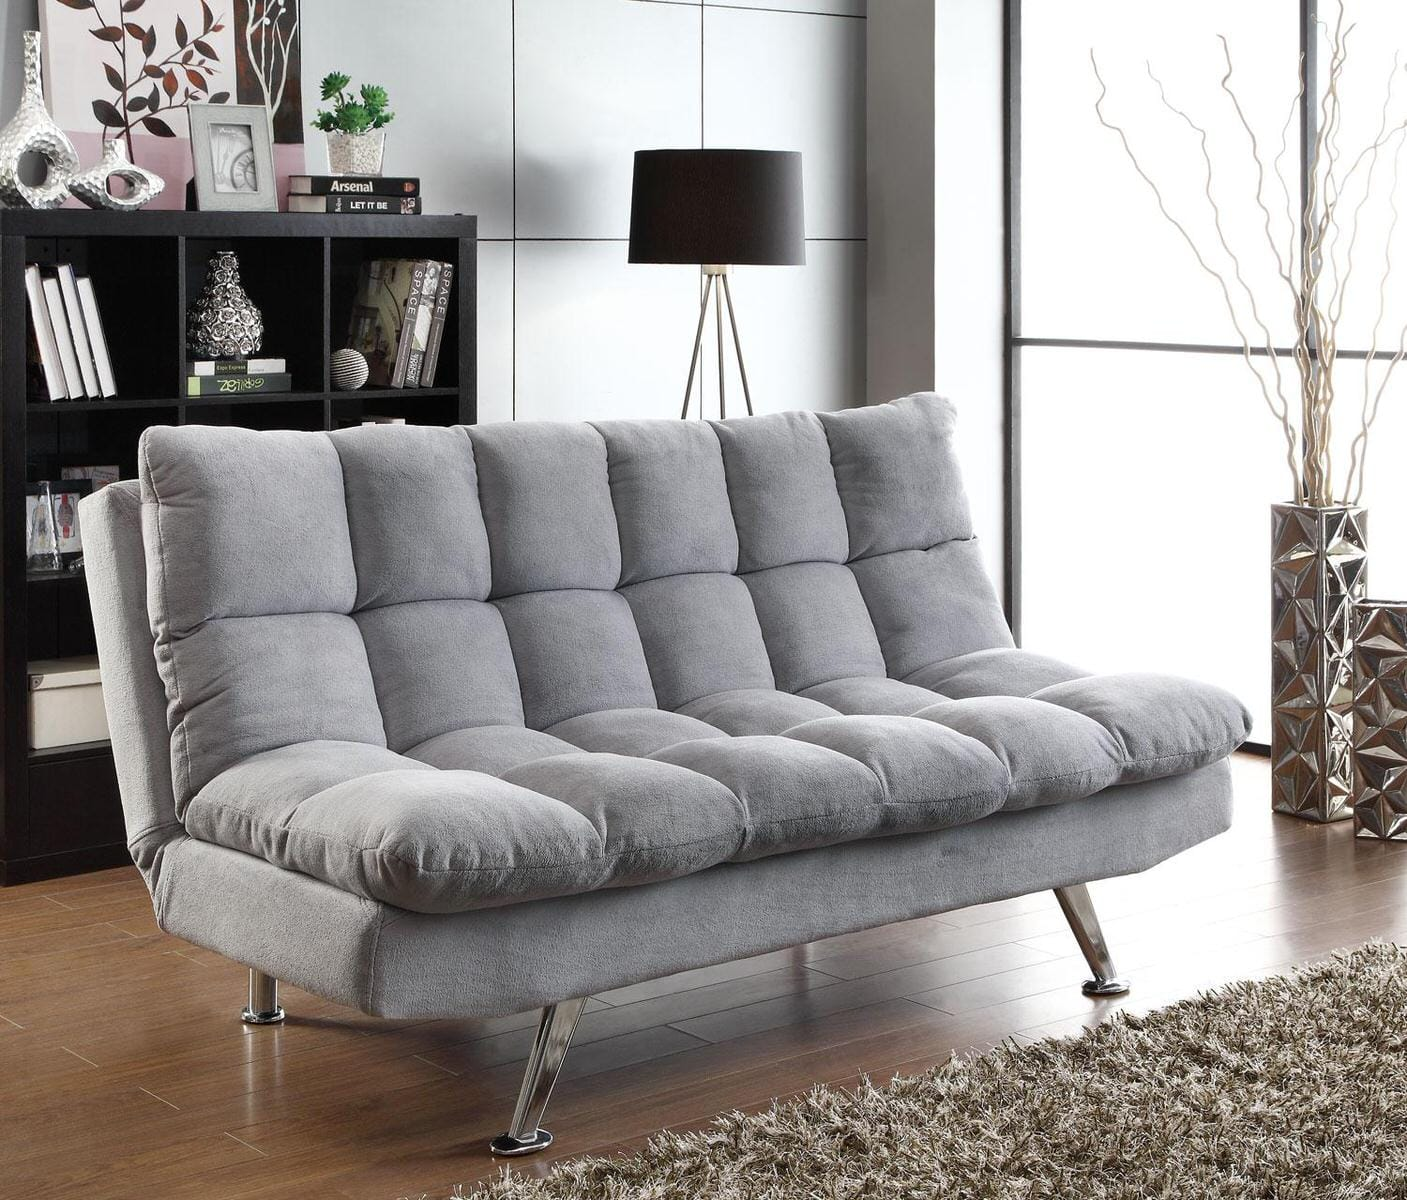 500775 sofa bed light gray by coaster for Sofa bed name